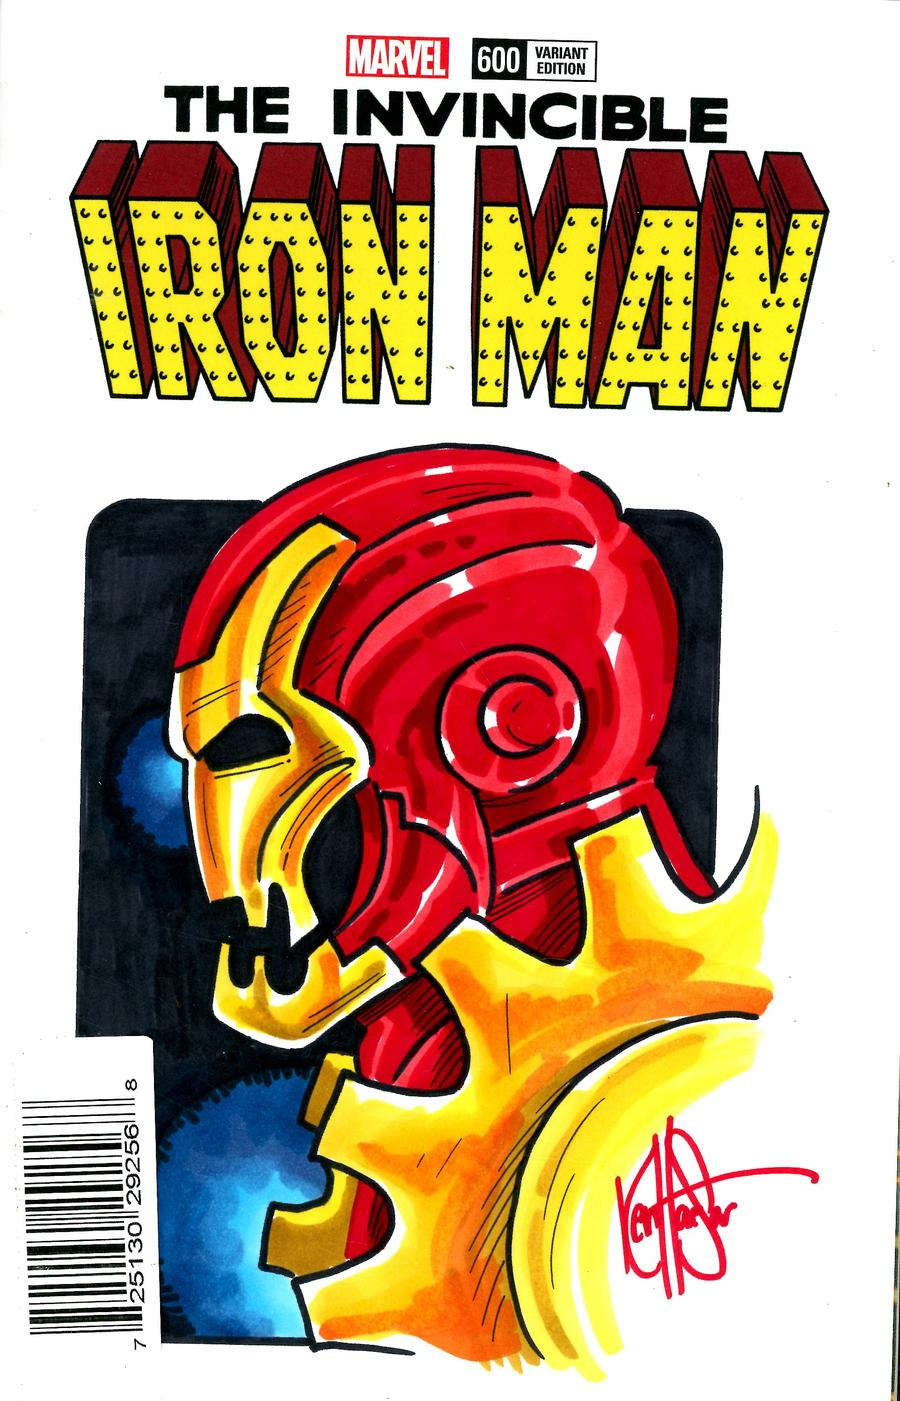 Invincible Iron Man Vol 3 #600 Cover K DF Blank Variant Cover With An Iron Man 2020 Hand-Drawn Sketch By Ken Haeser